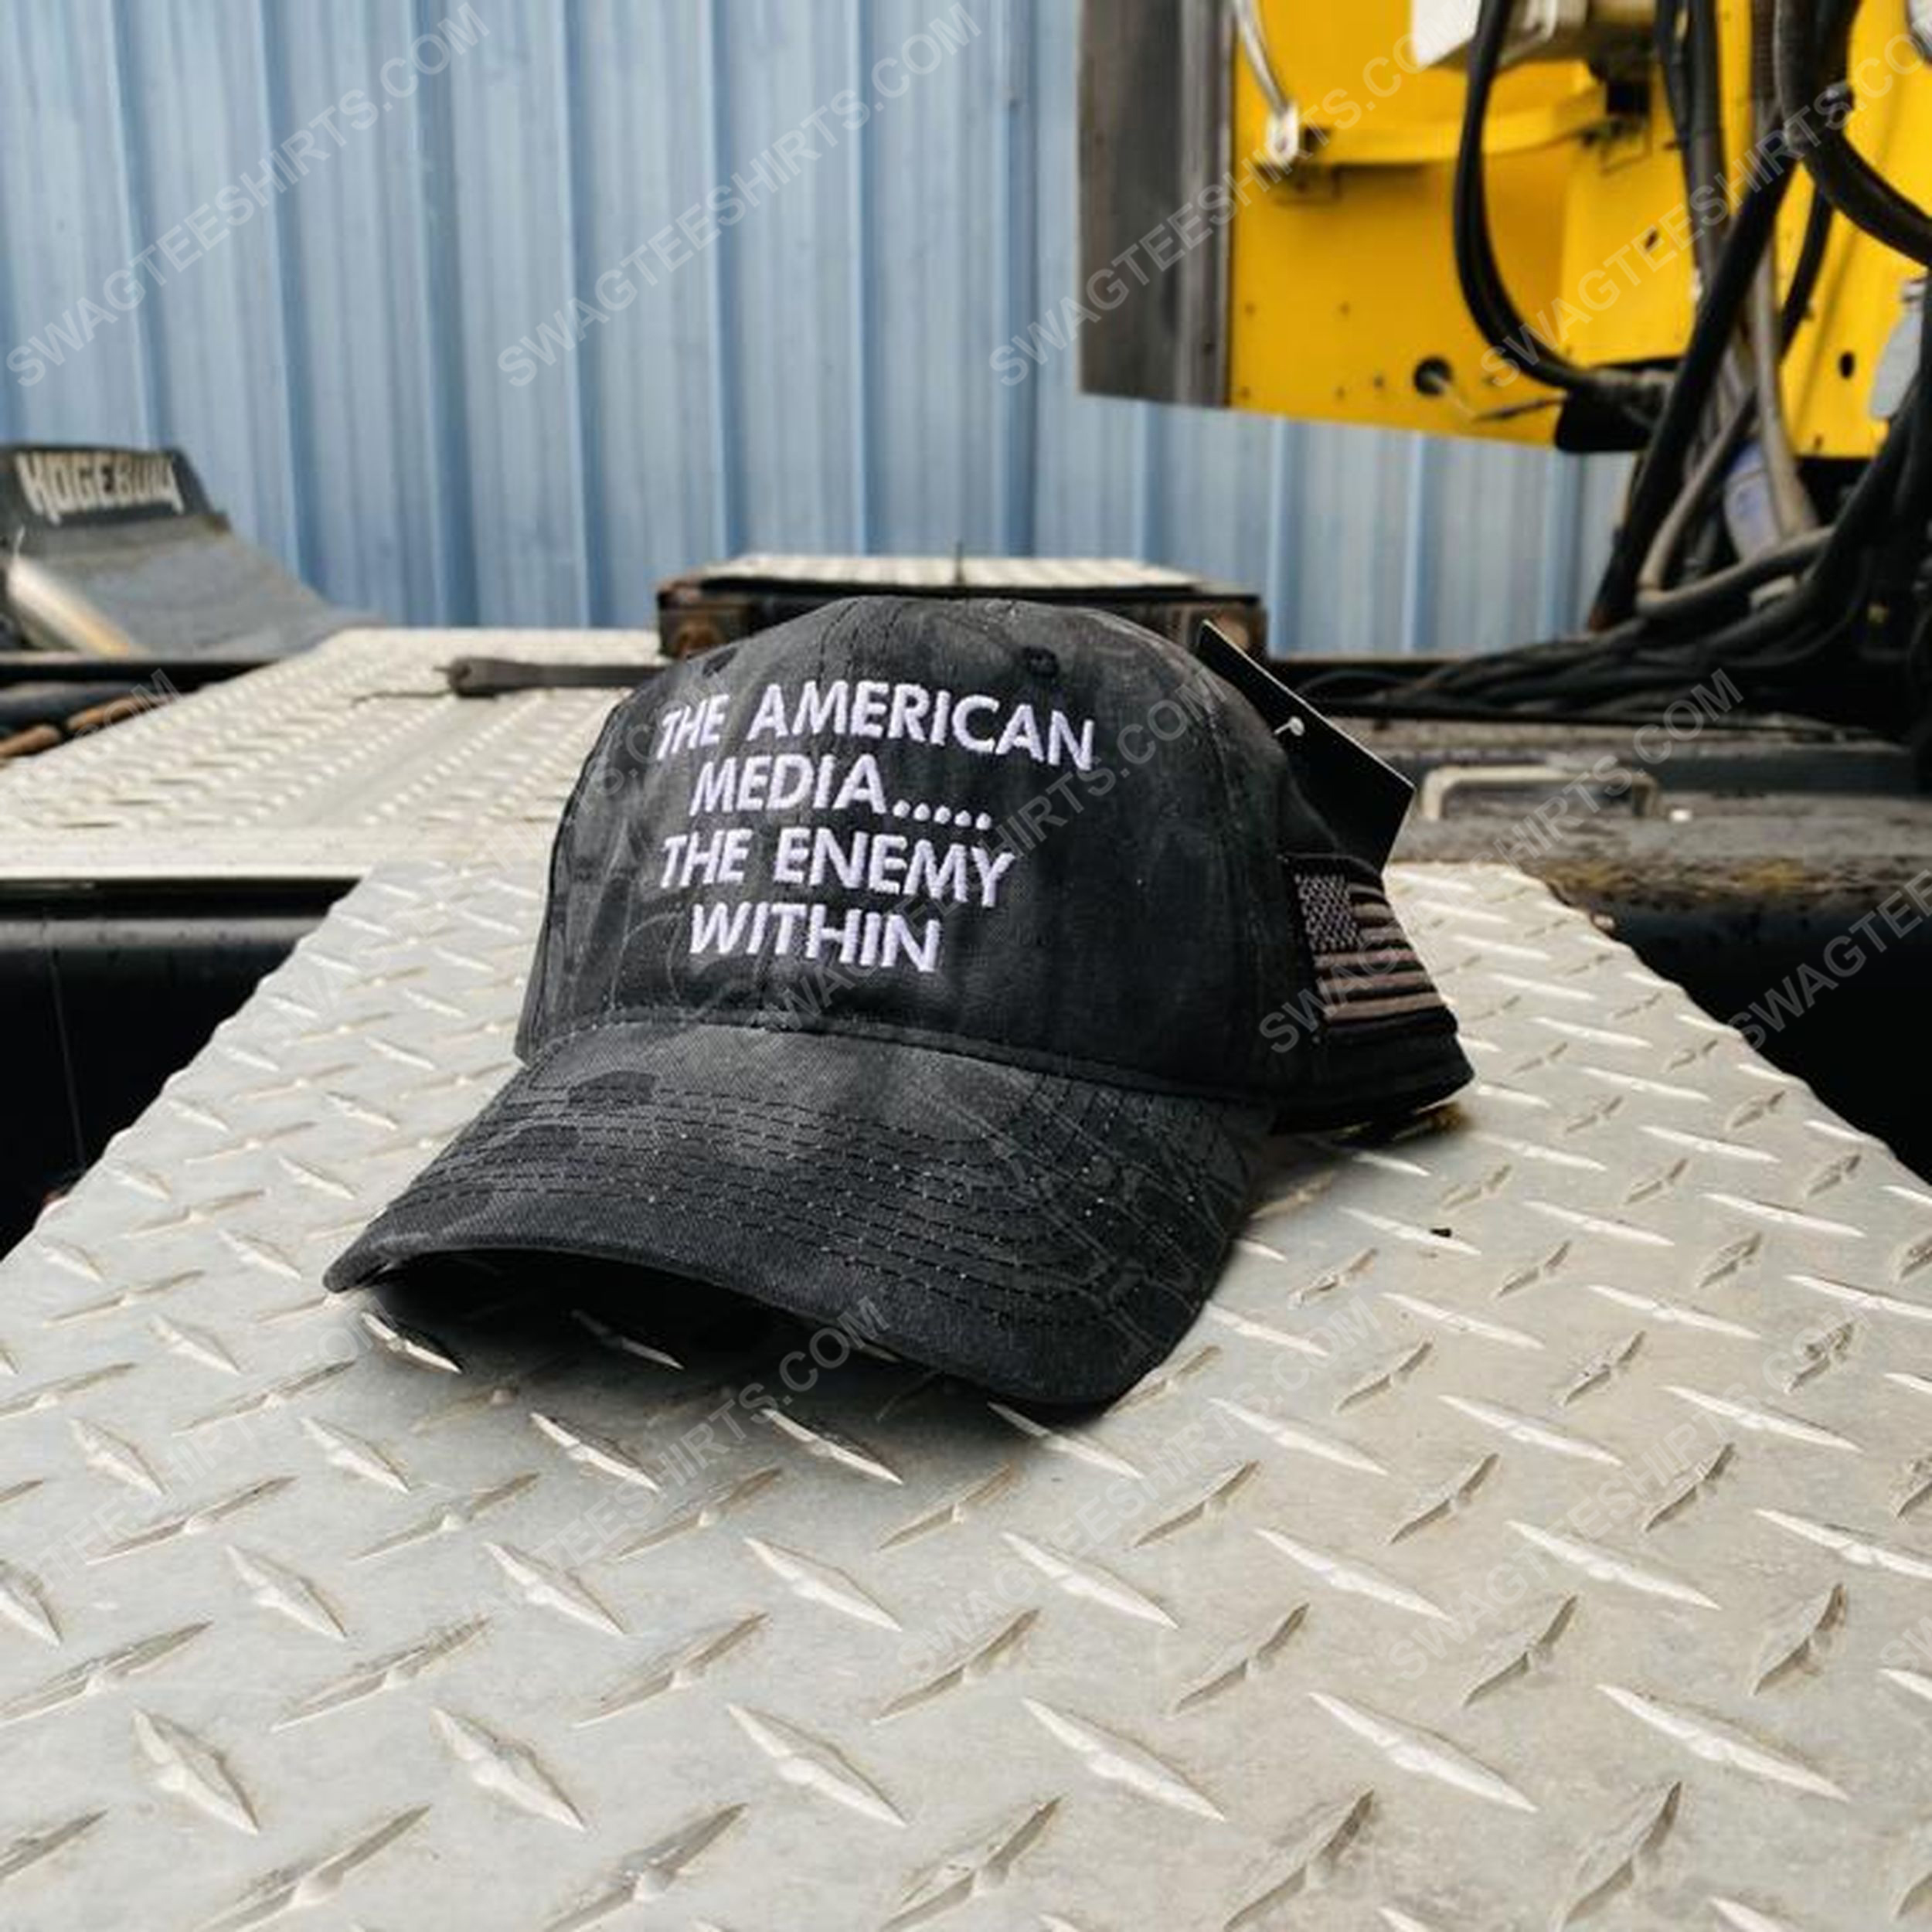 The american media the enemy within full print classic hat 1